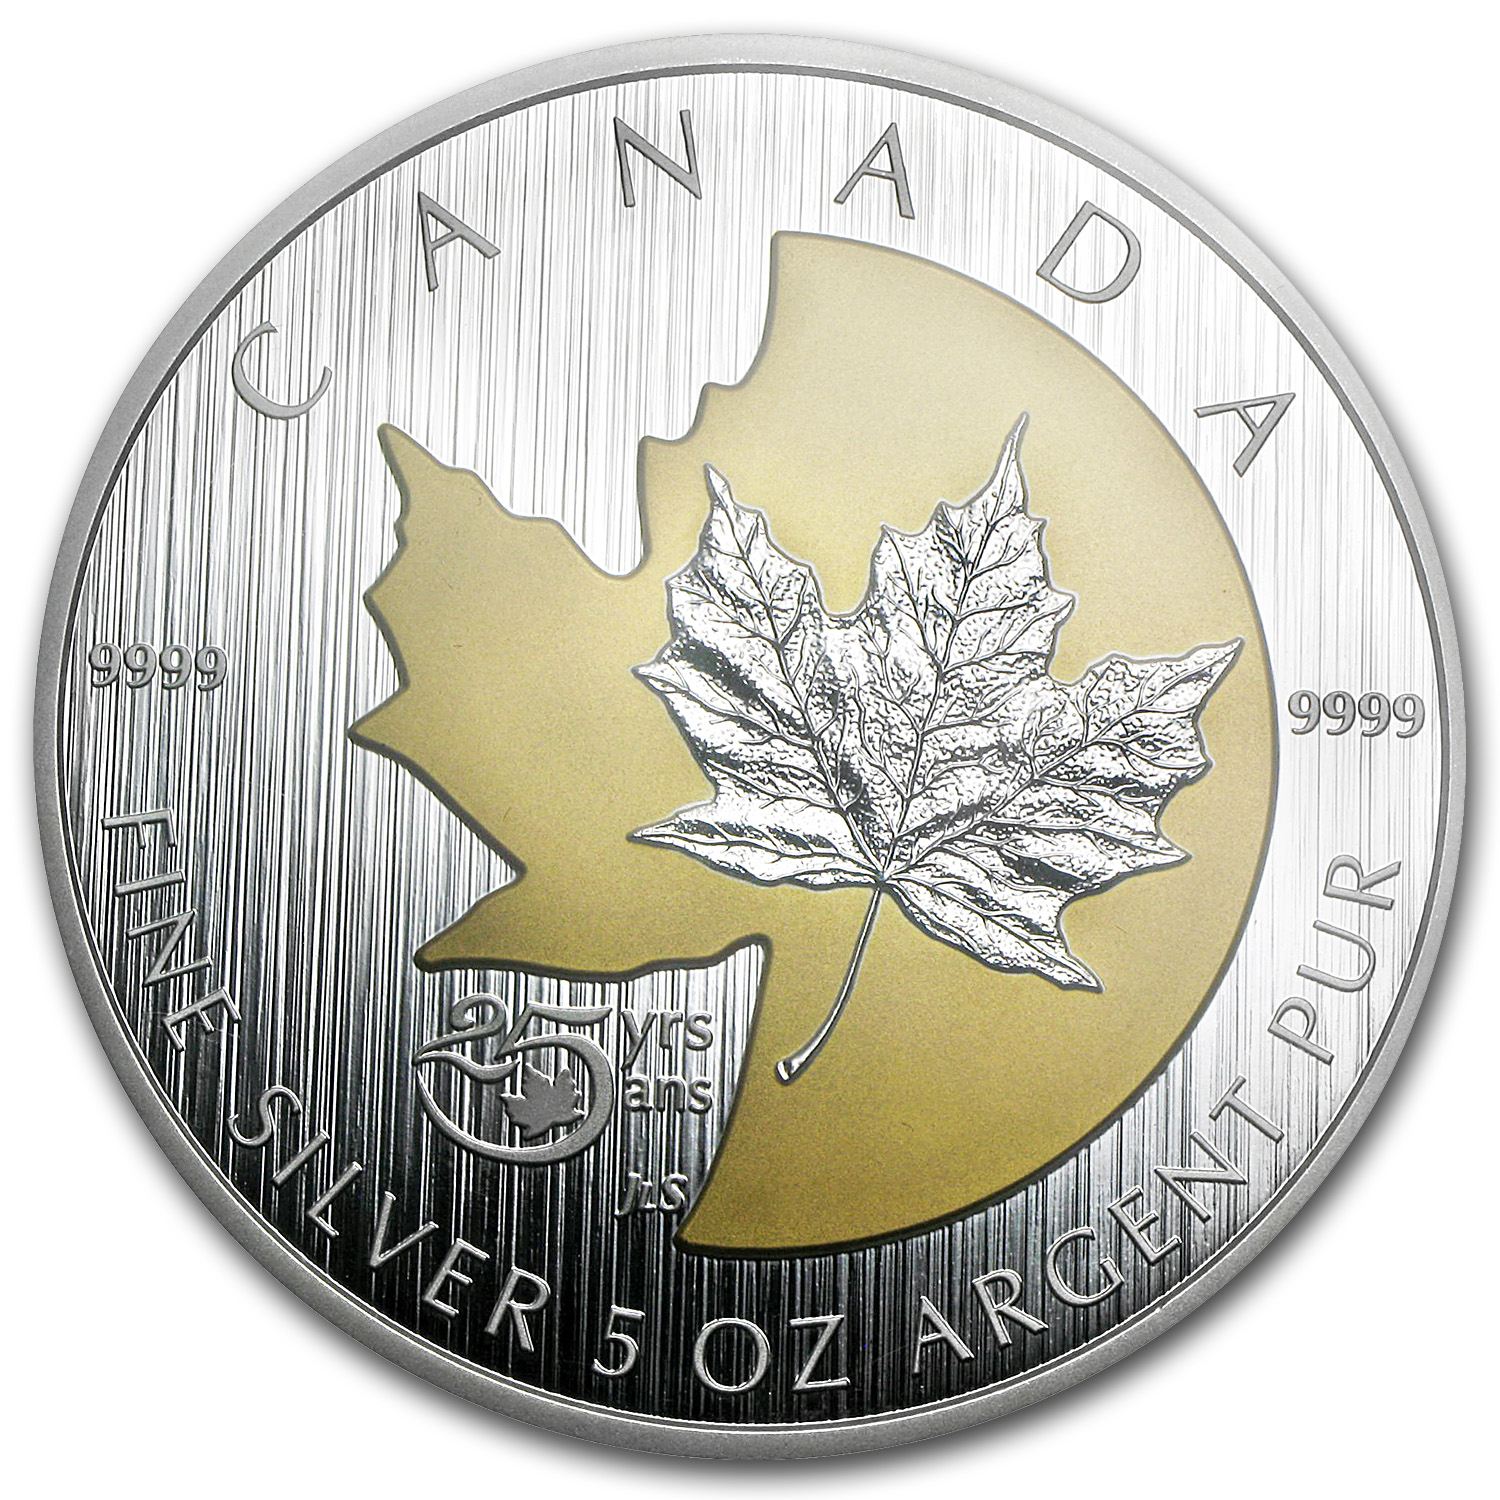 2013 5 oz Silver Canadian 25th Anniv of the Silver Maple (Gilded)